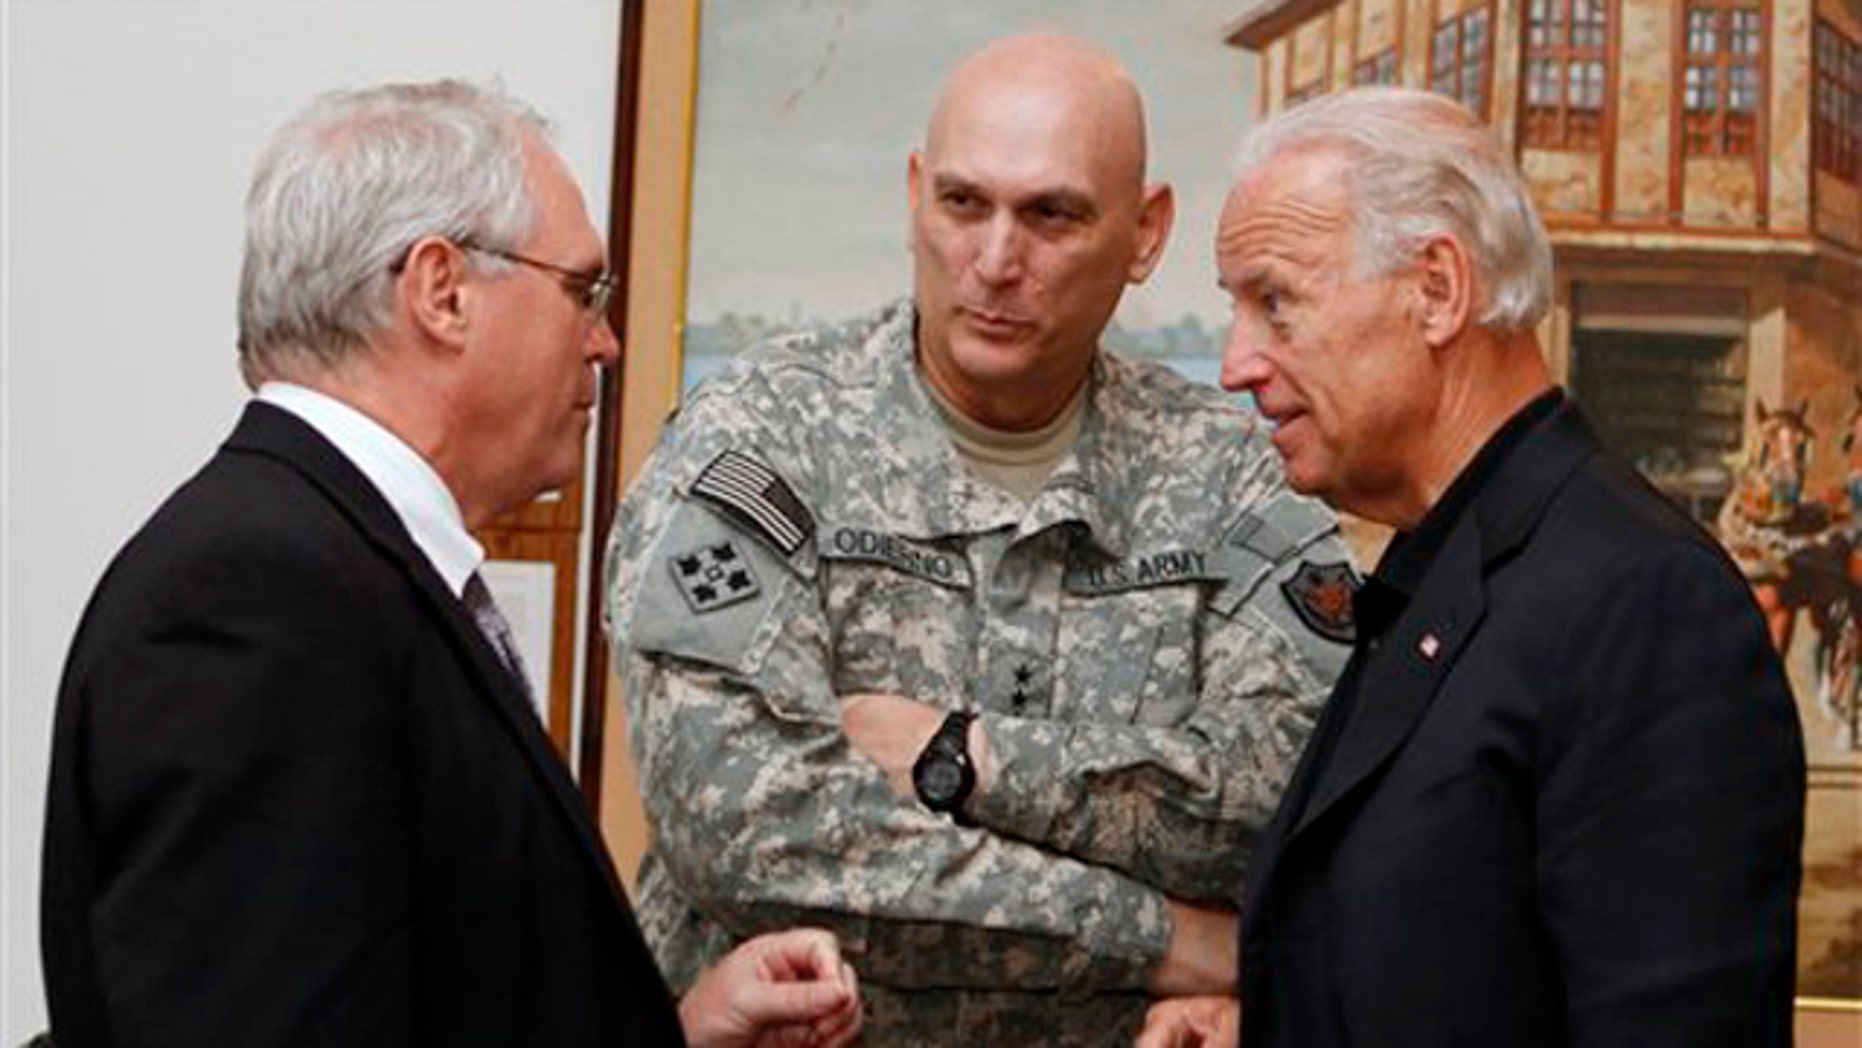 FILE: In this July 3 photo, Gen. Ray Odierno meets with Vice President Biden and U.S. Ambassador to Iraq Christopher Hill at the embassy in Baghdad. (AP Photo)